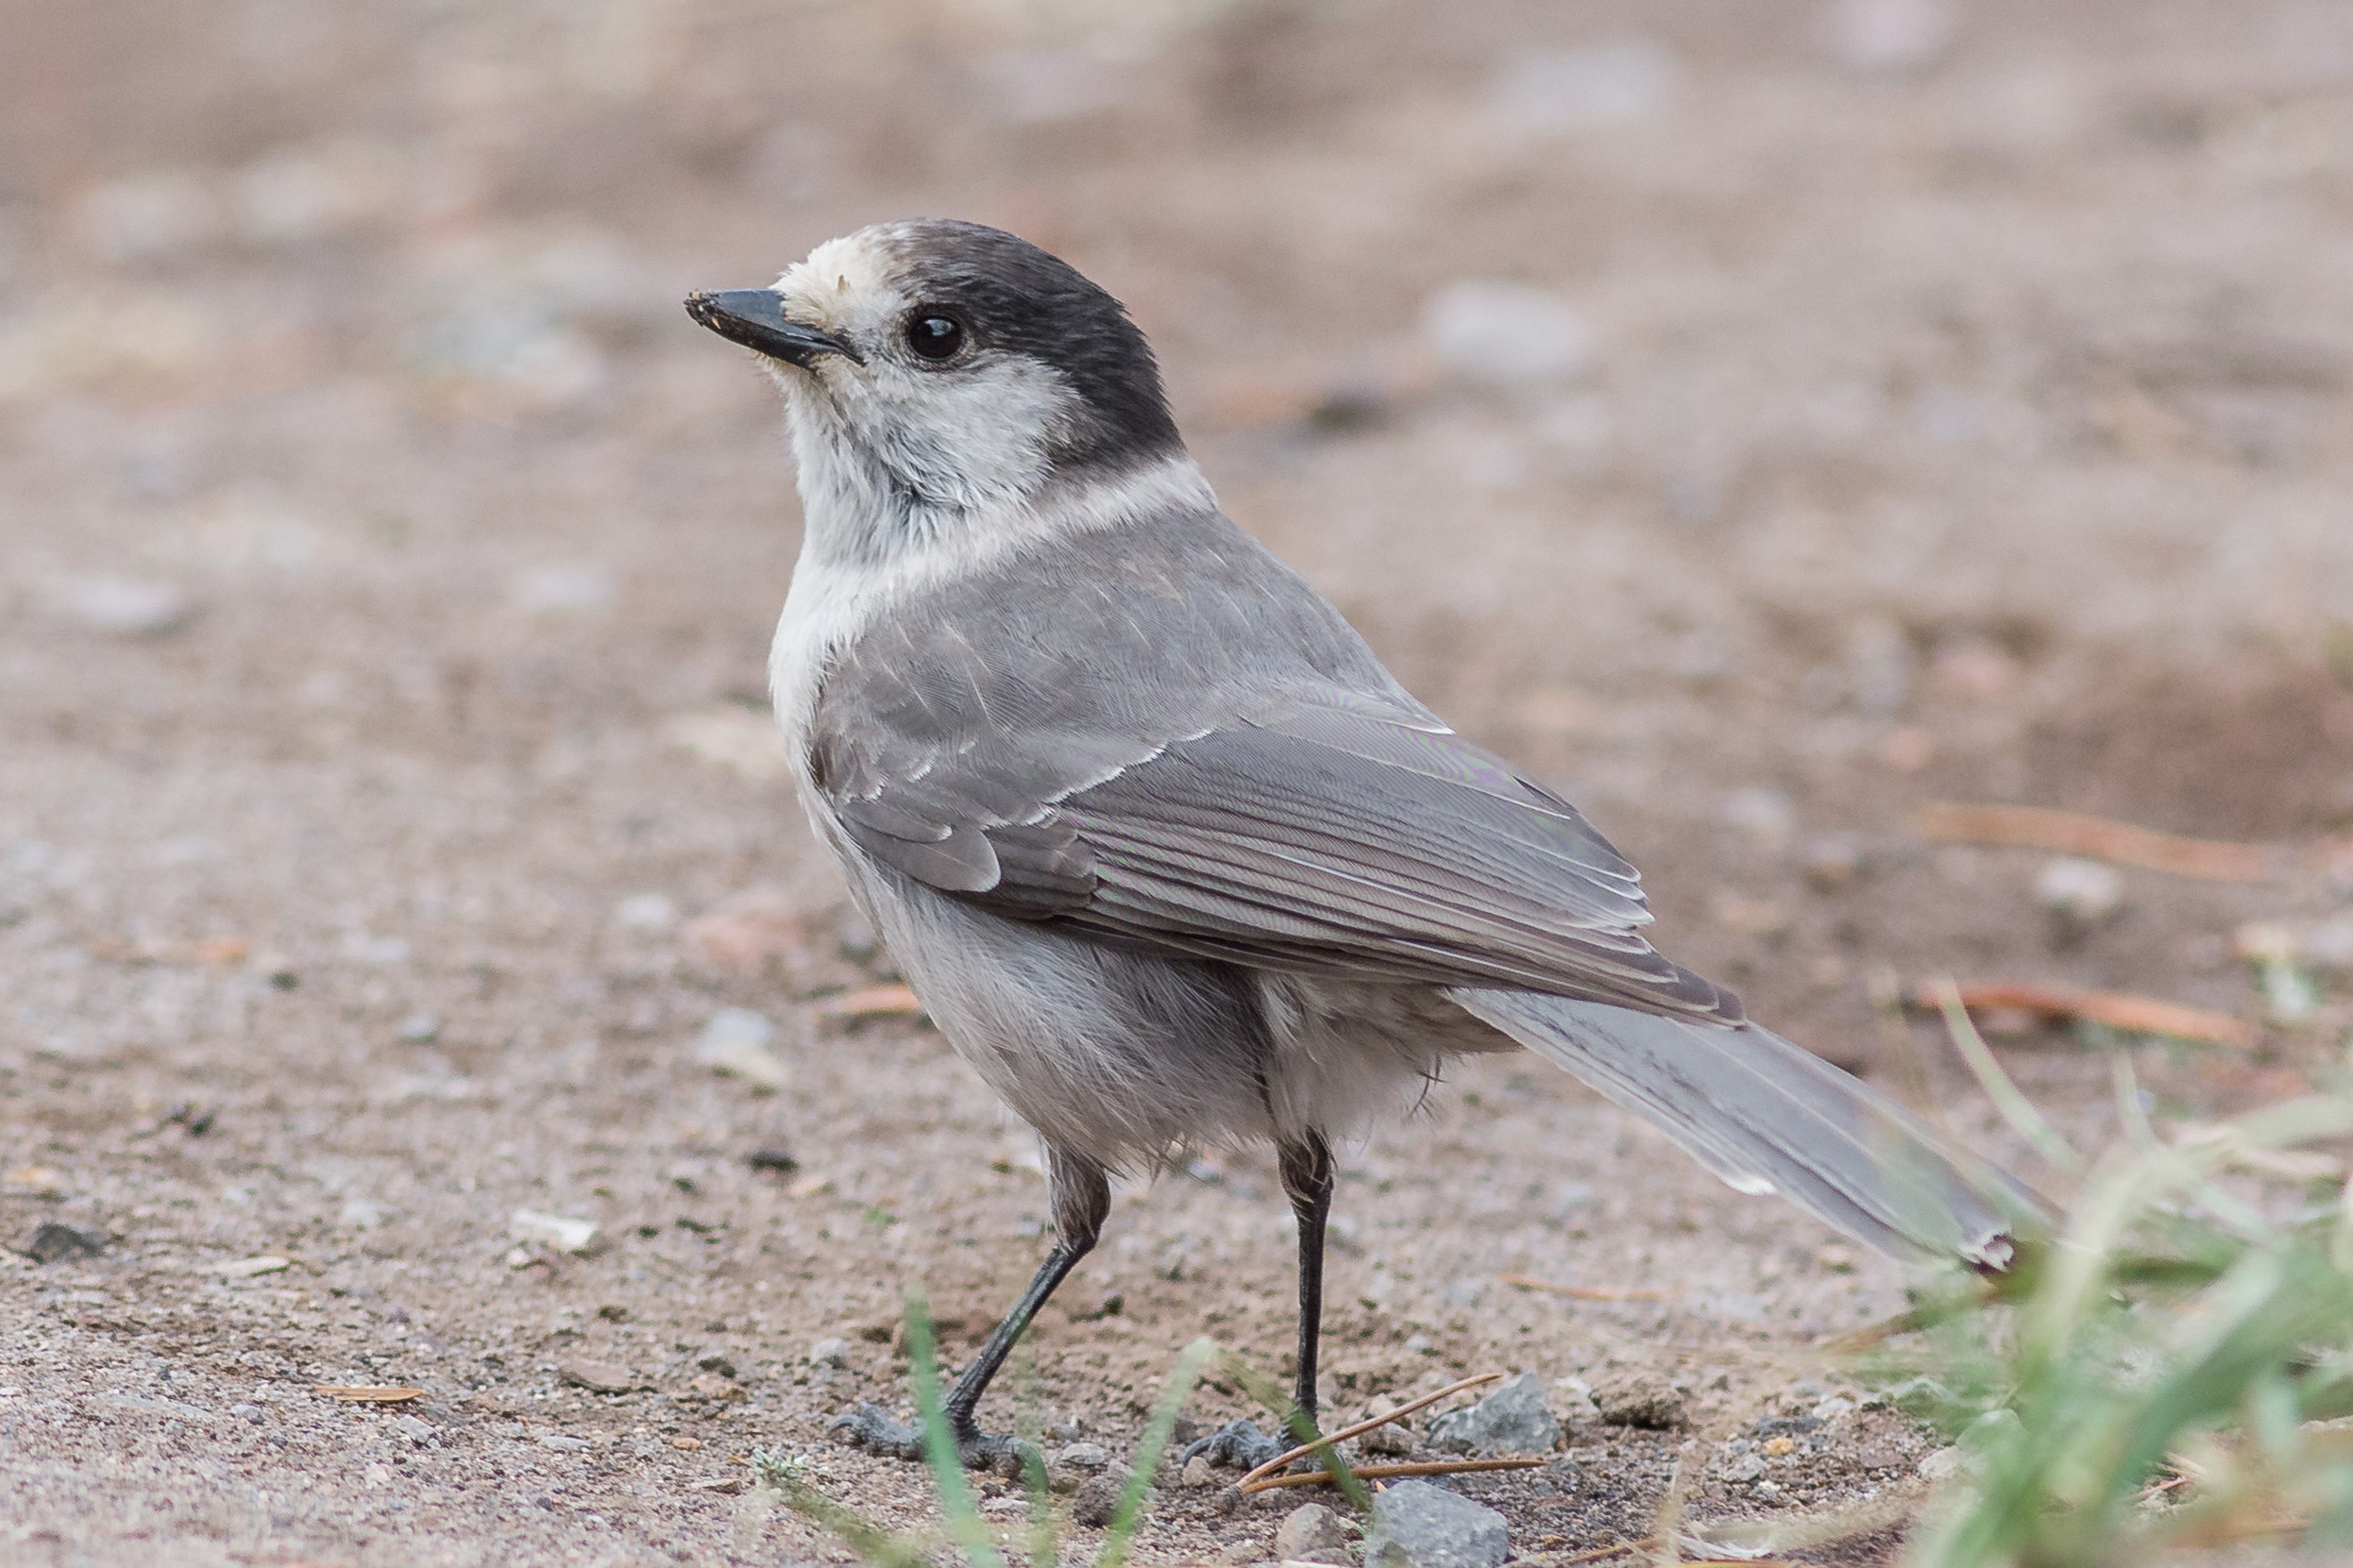 Gray Jay (Perisoreus canadensis) - Crater Lake NP , Klamath Co. (OR)  EQ: D7200, 300mm f/2.8  Taken: 10-1-2016 at 13:08   Settings: 450 mm (35mm eqiv), 1/1000s, f/3.5, ISO500, +1/3EV  Conditions: Overcast with Snow